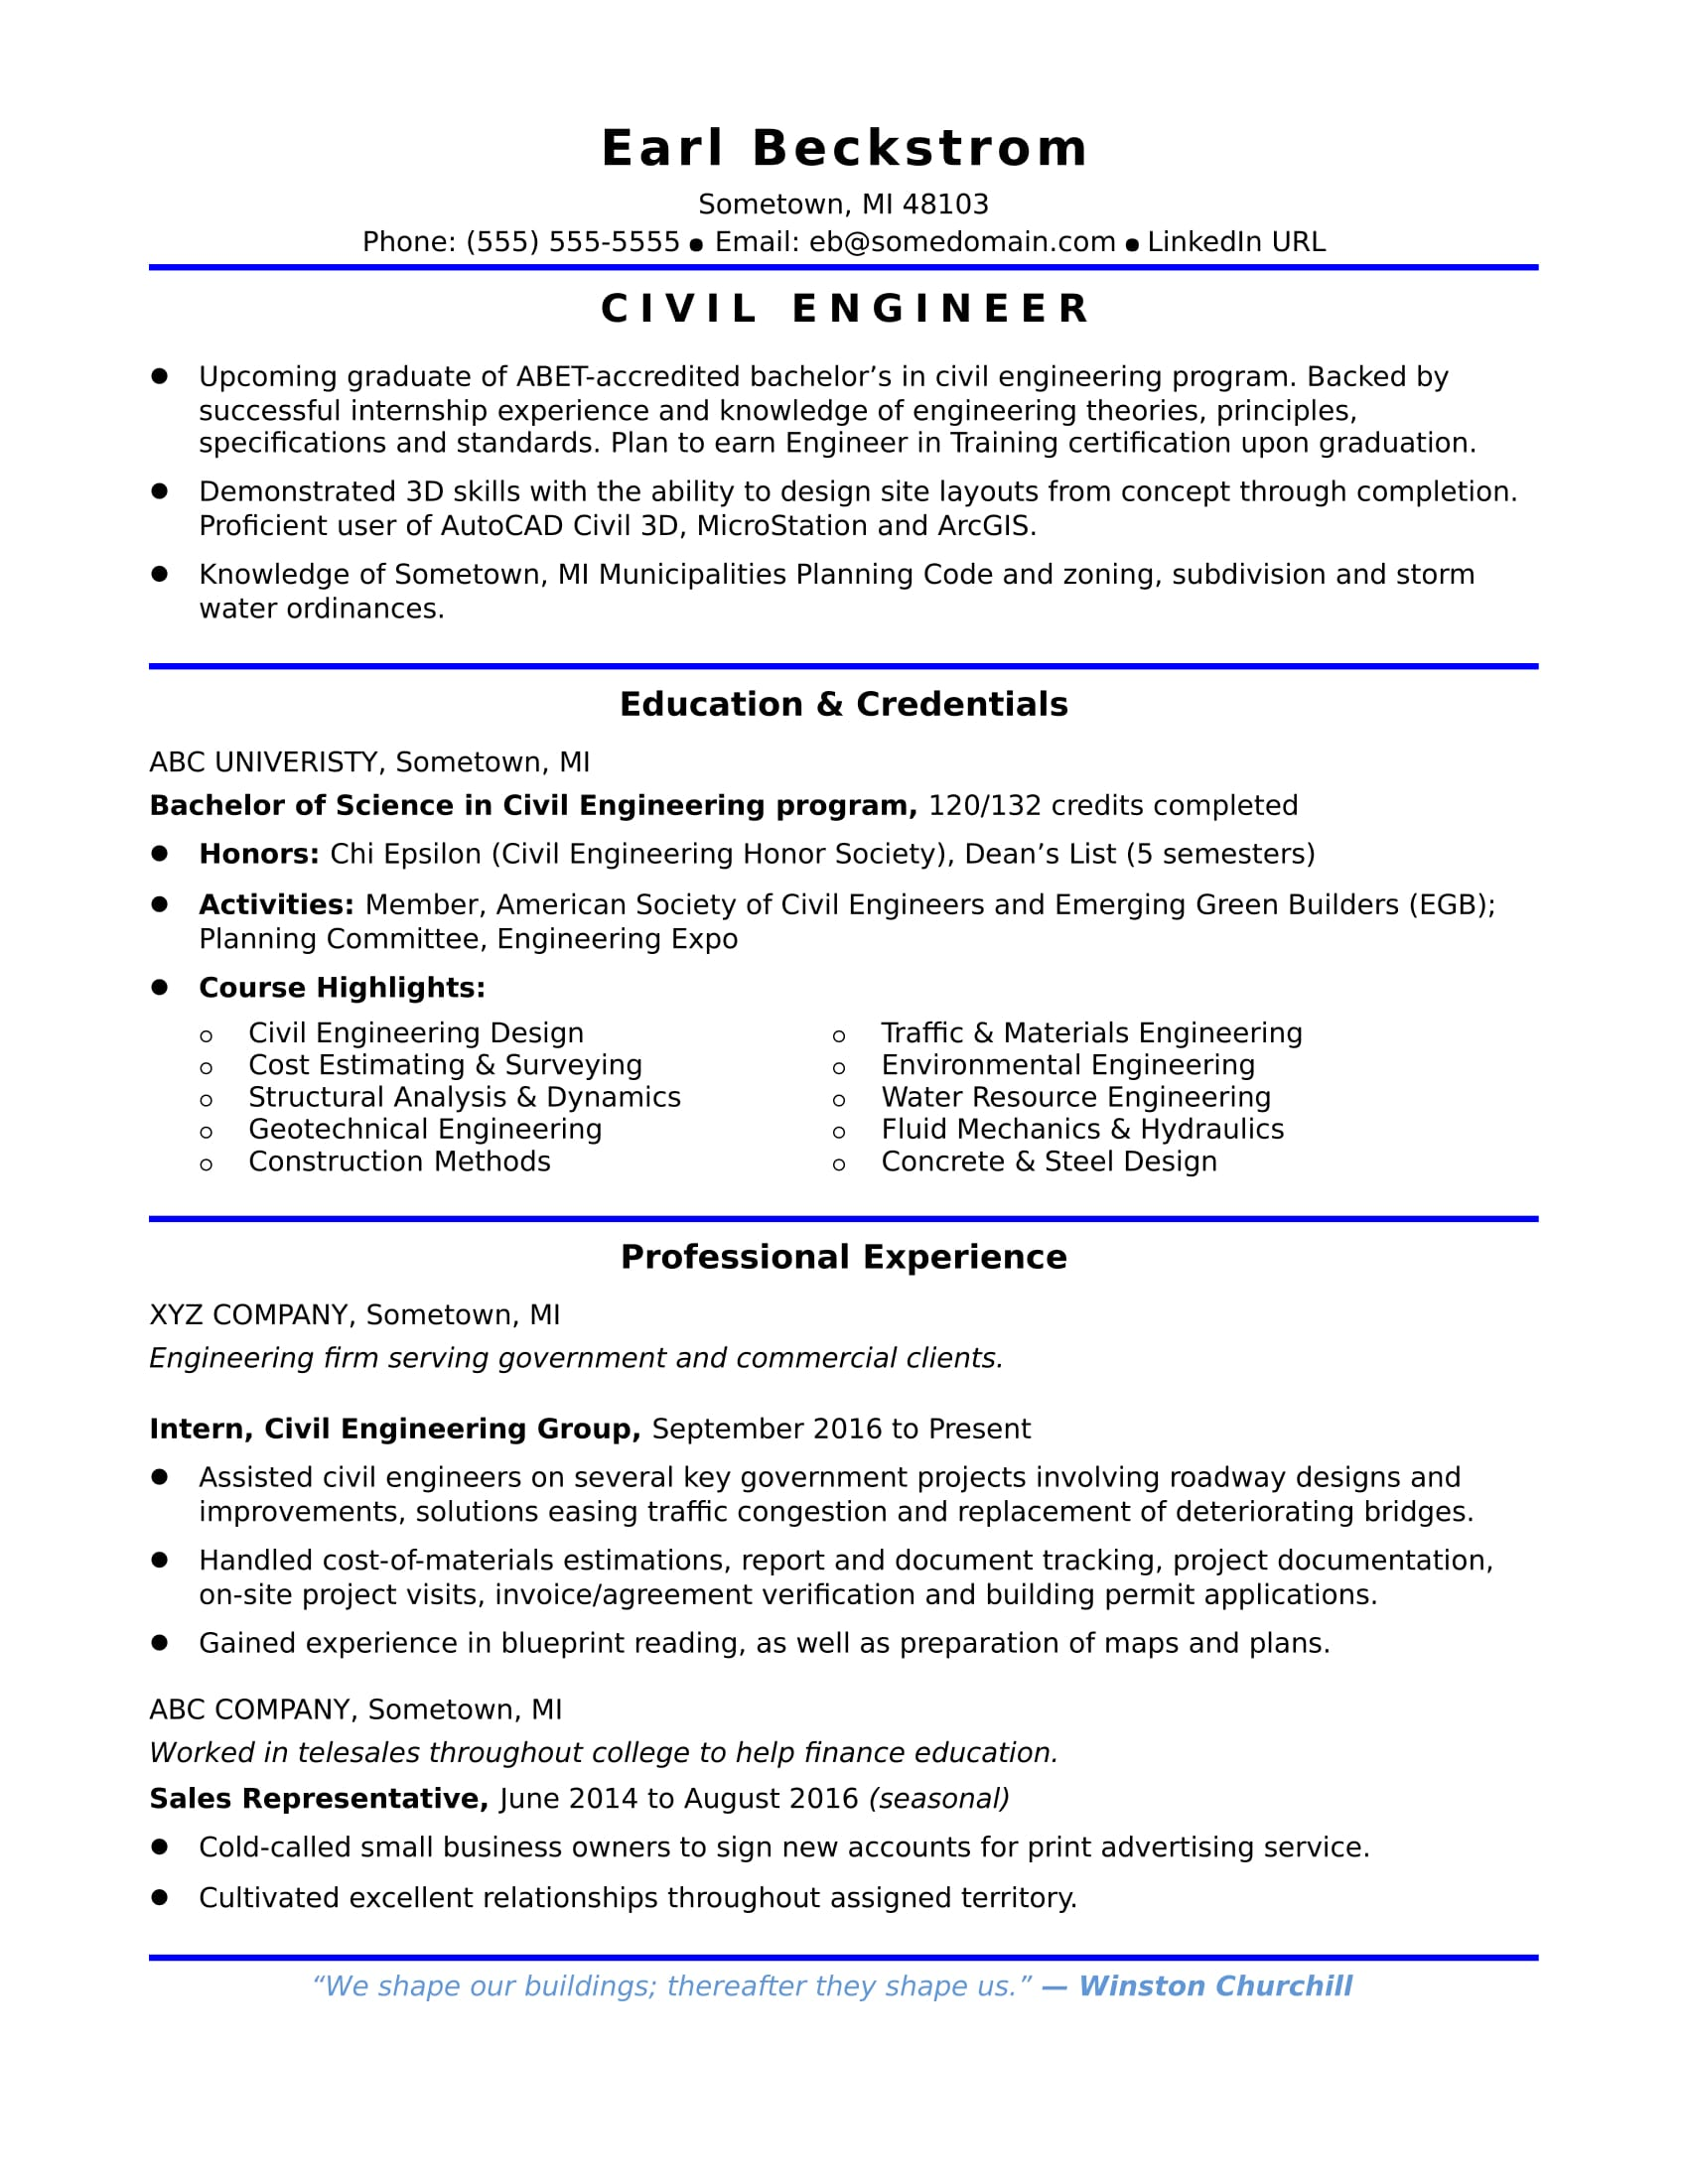 sample resume for an entry level civil engineer - Sample Resume Entry Level Civil Engineer